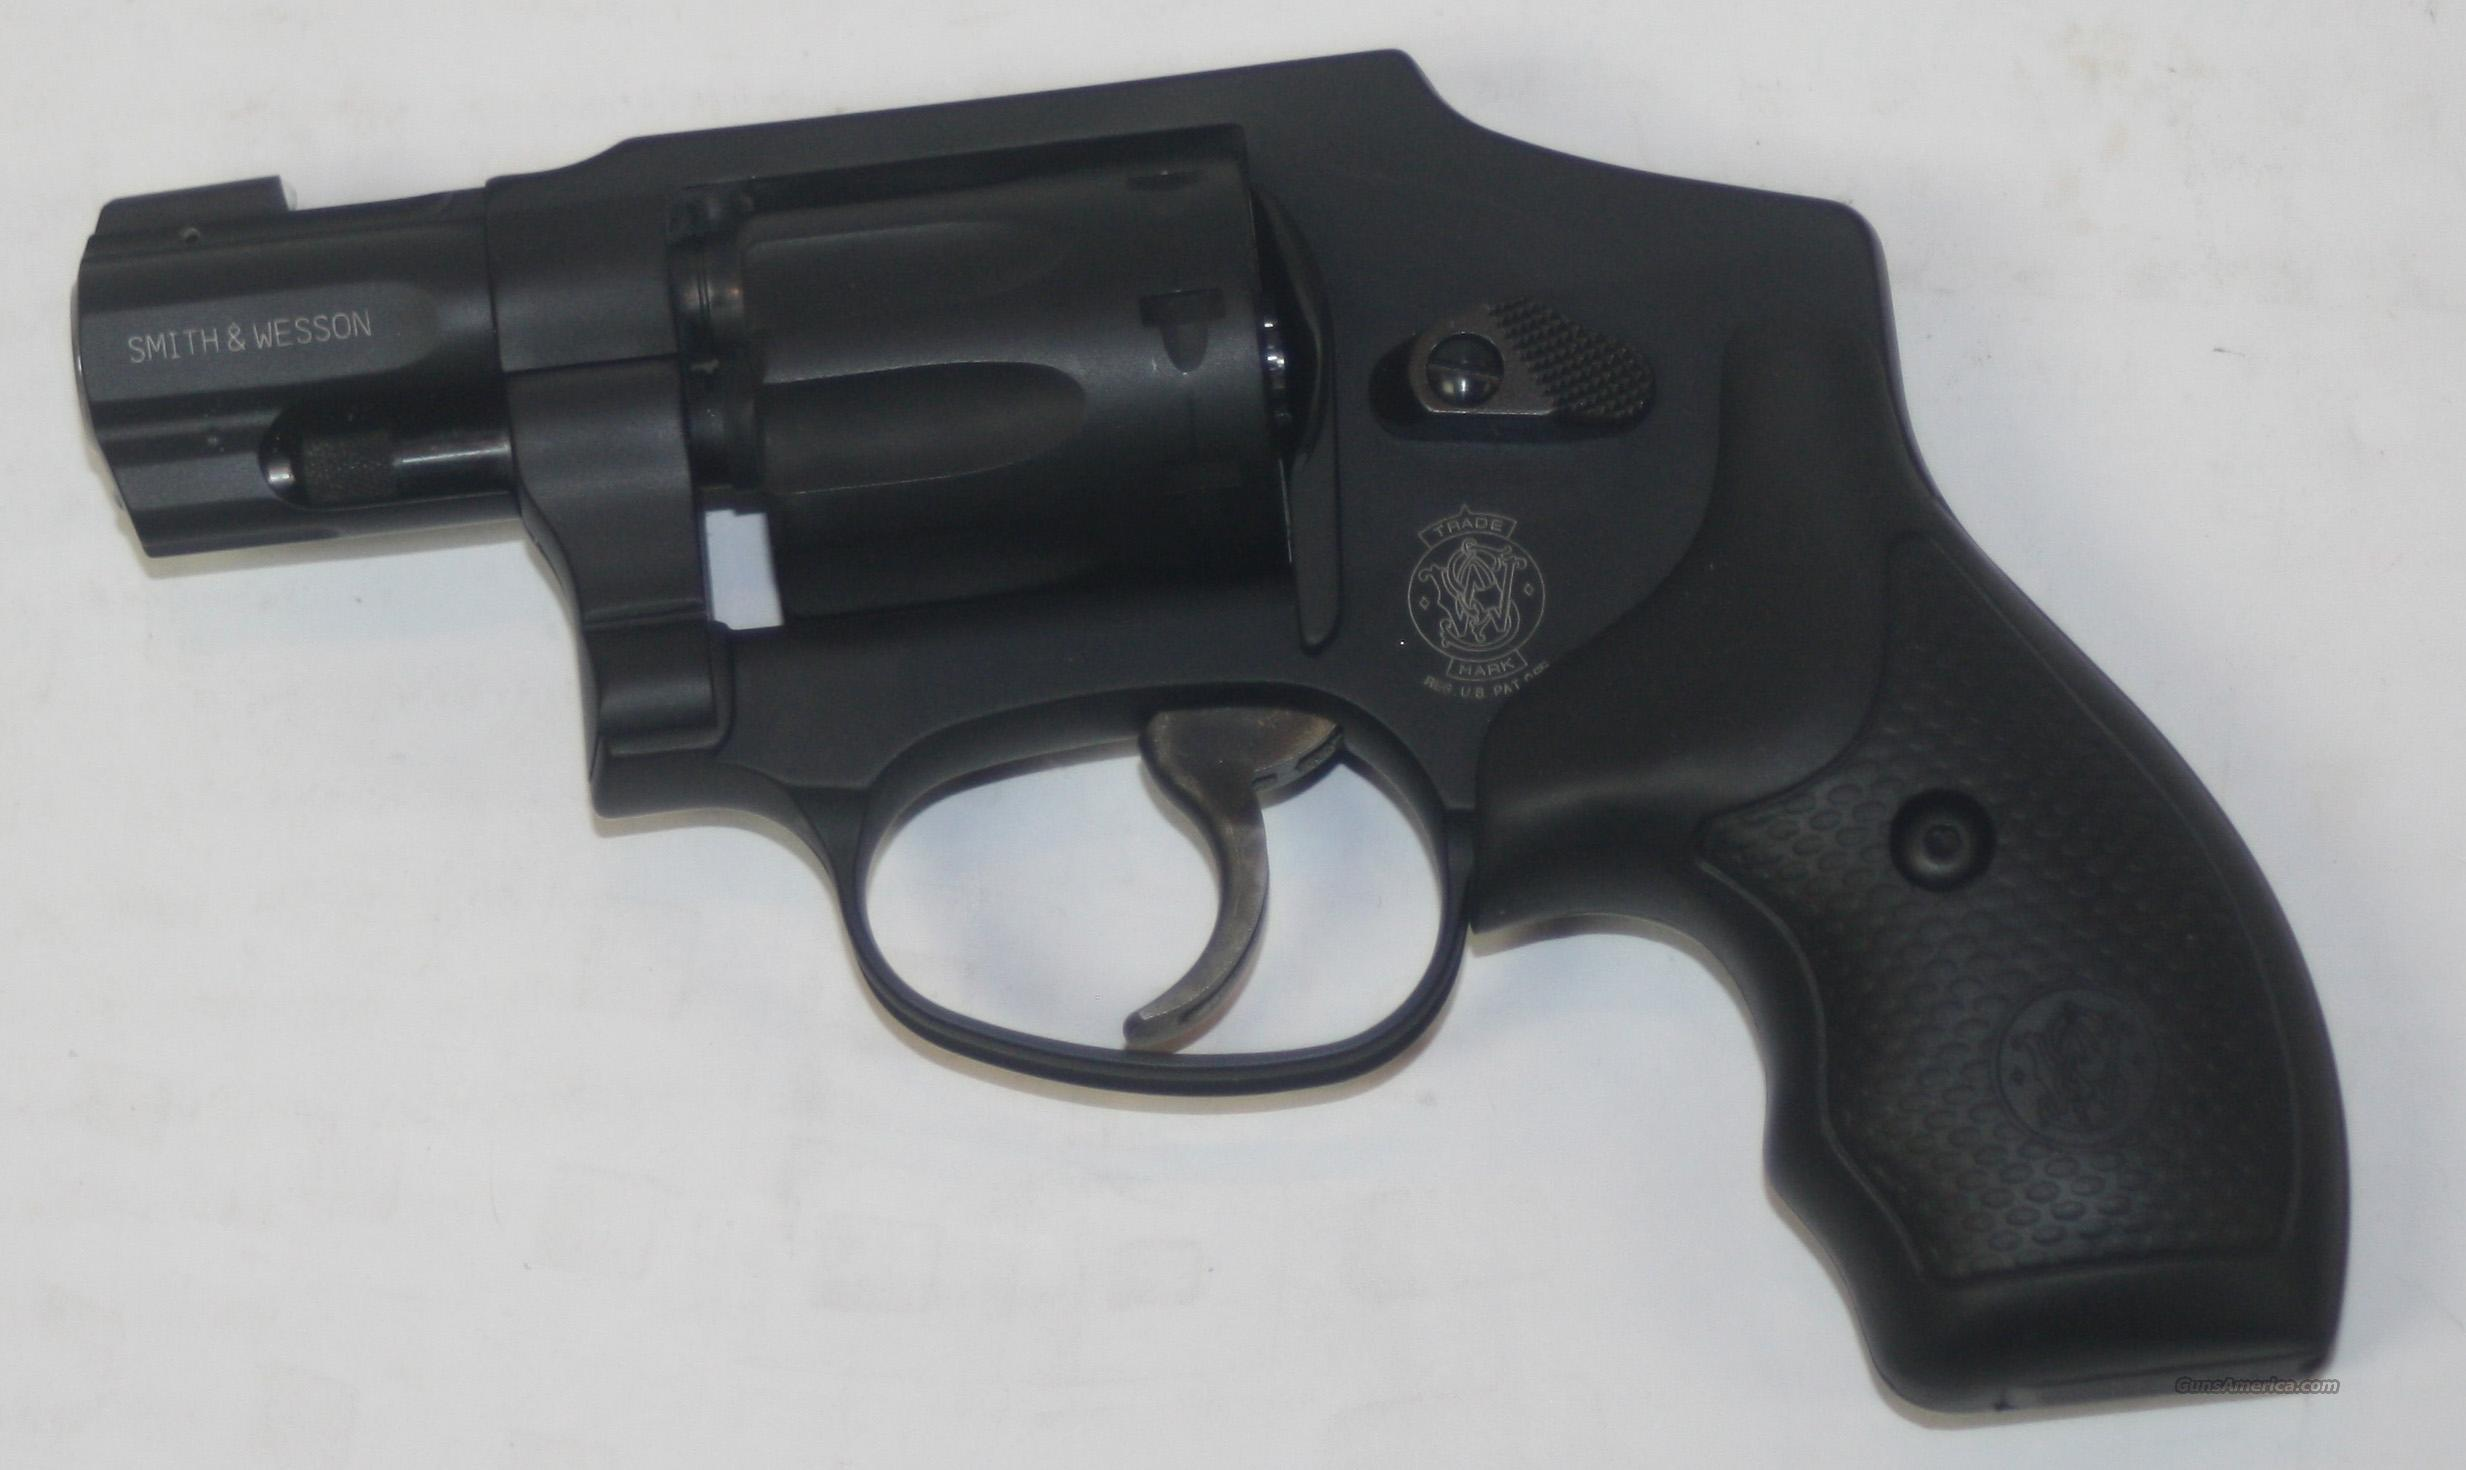 "SMITH & WESSON MODEL 43 CLASSIC 1.87"" 22 LR 8-SHOT NEW IN BOX  Guns > Pistols > Smith & Wesson Revolvers > Pocket Pistols"